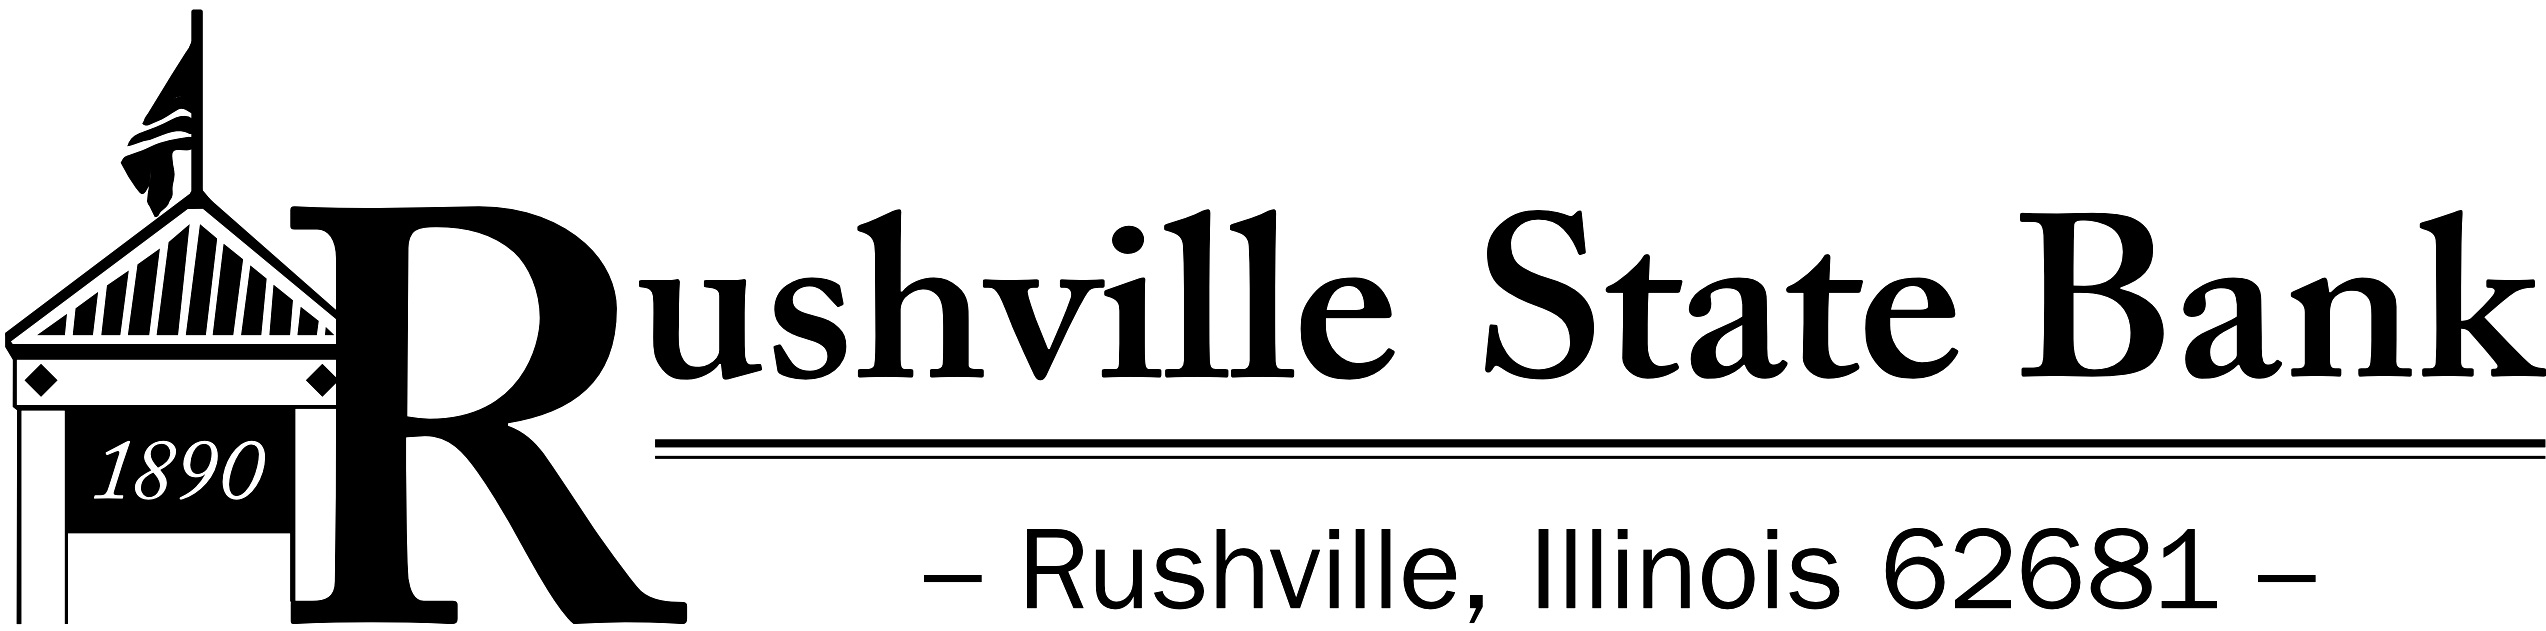 Rushville State Bank logo